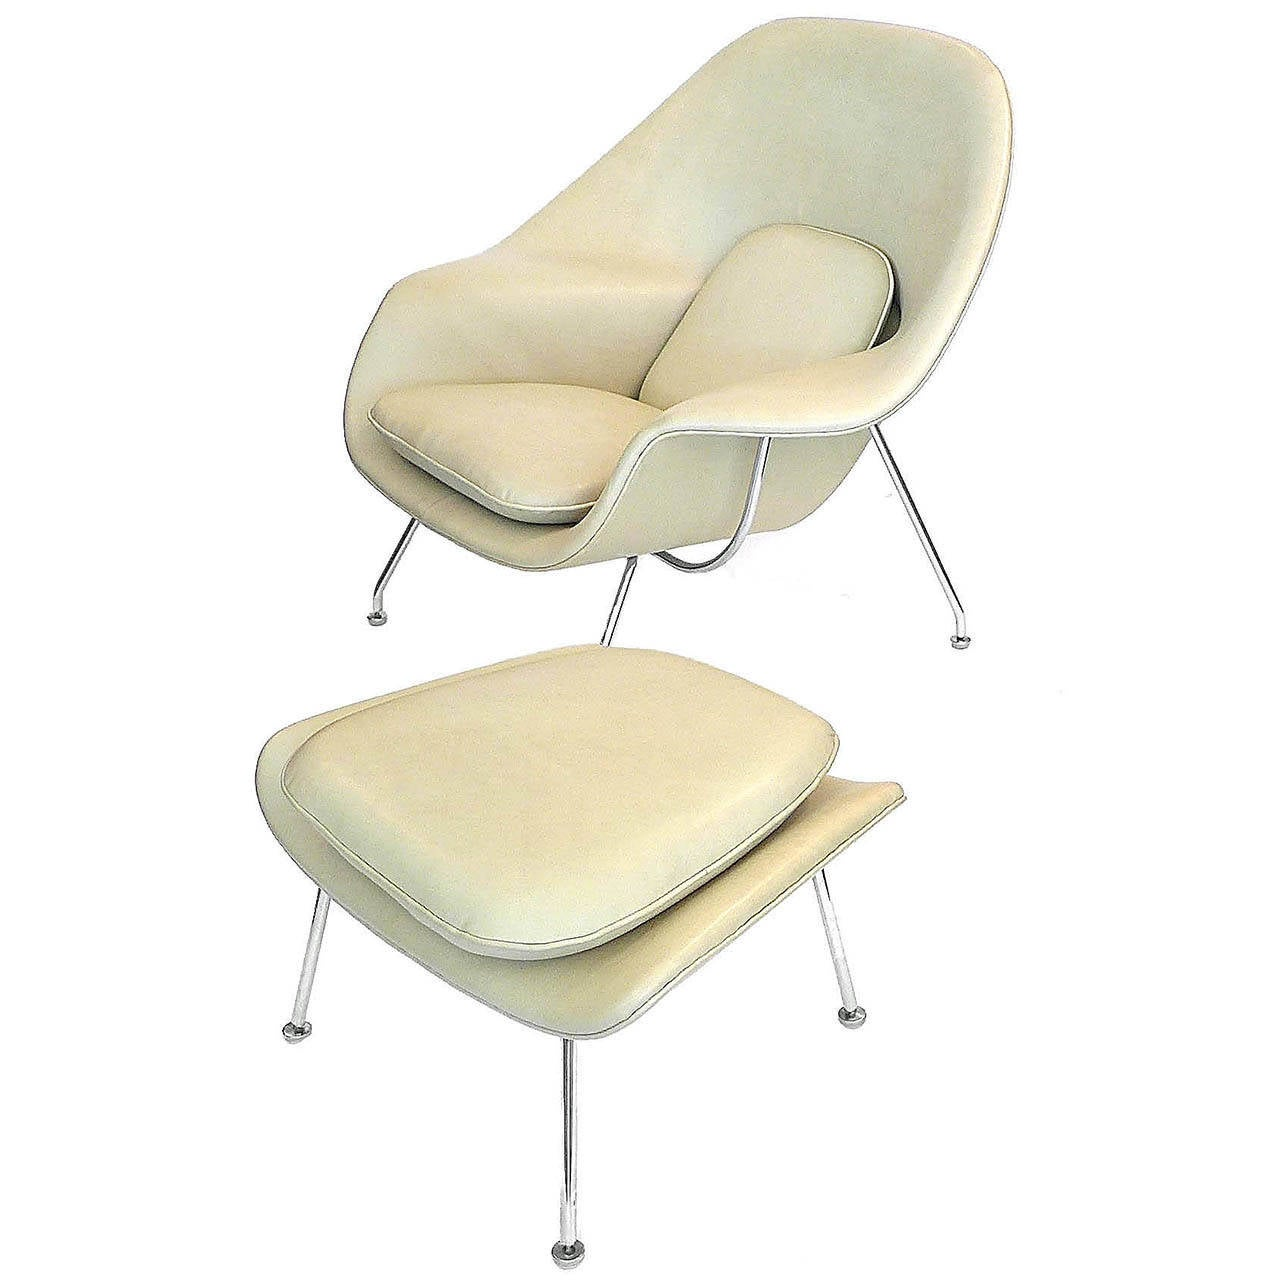 saarinen leather womb chair and ottoman knoll 1978 at 1stdibs